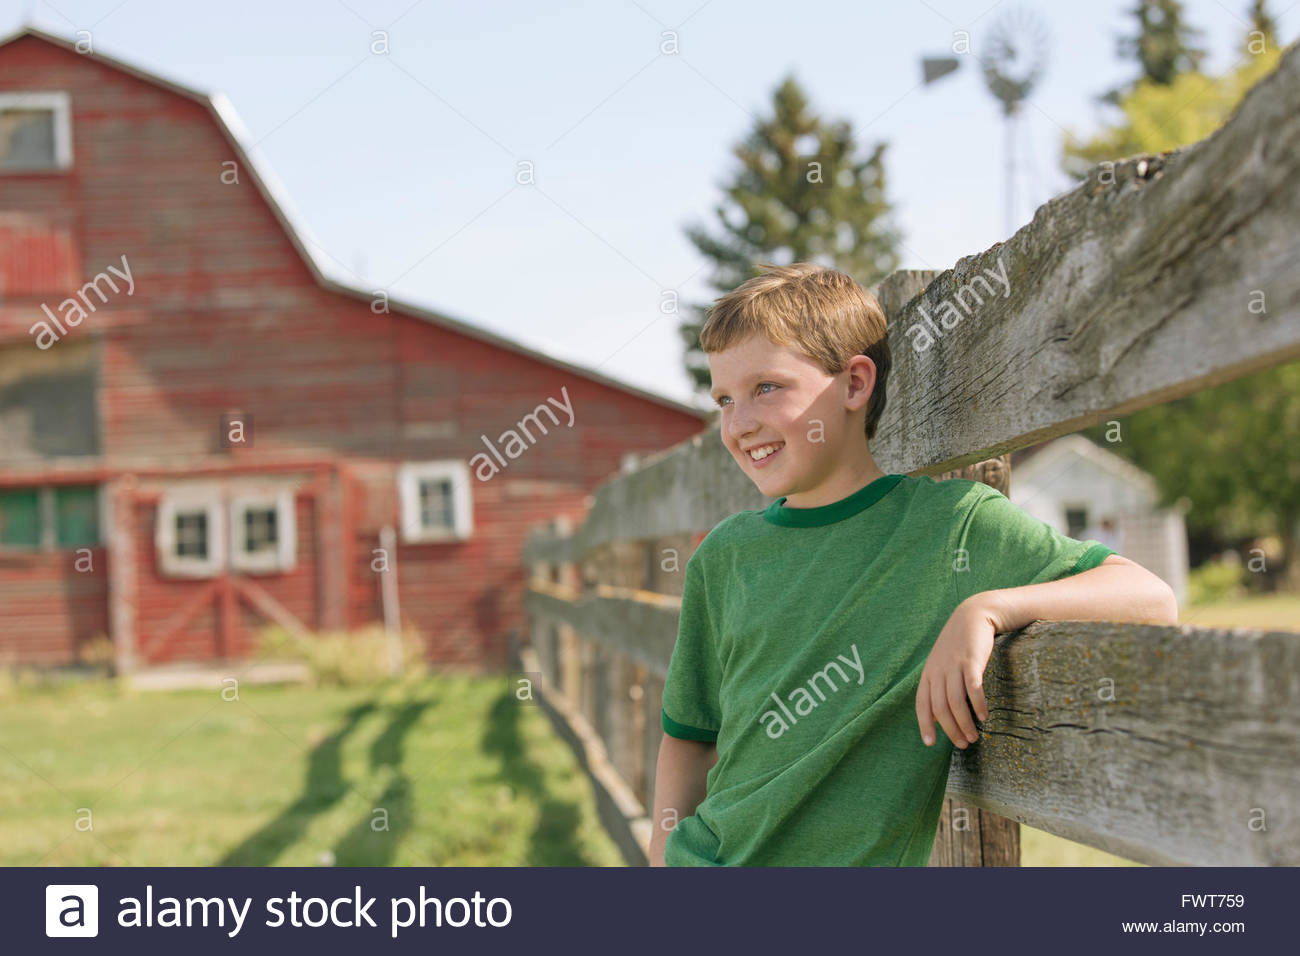 Young boy leaning on fence on rural property. - Stock Image